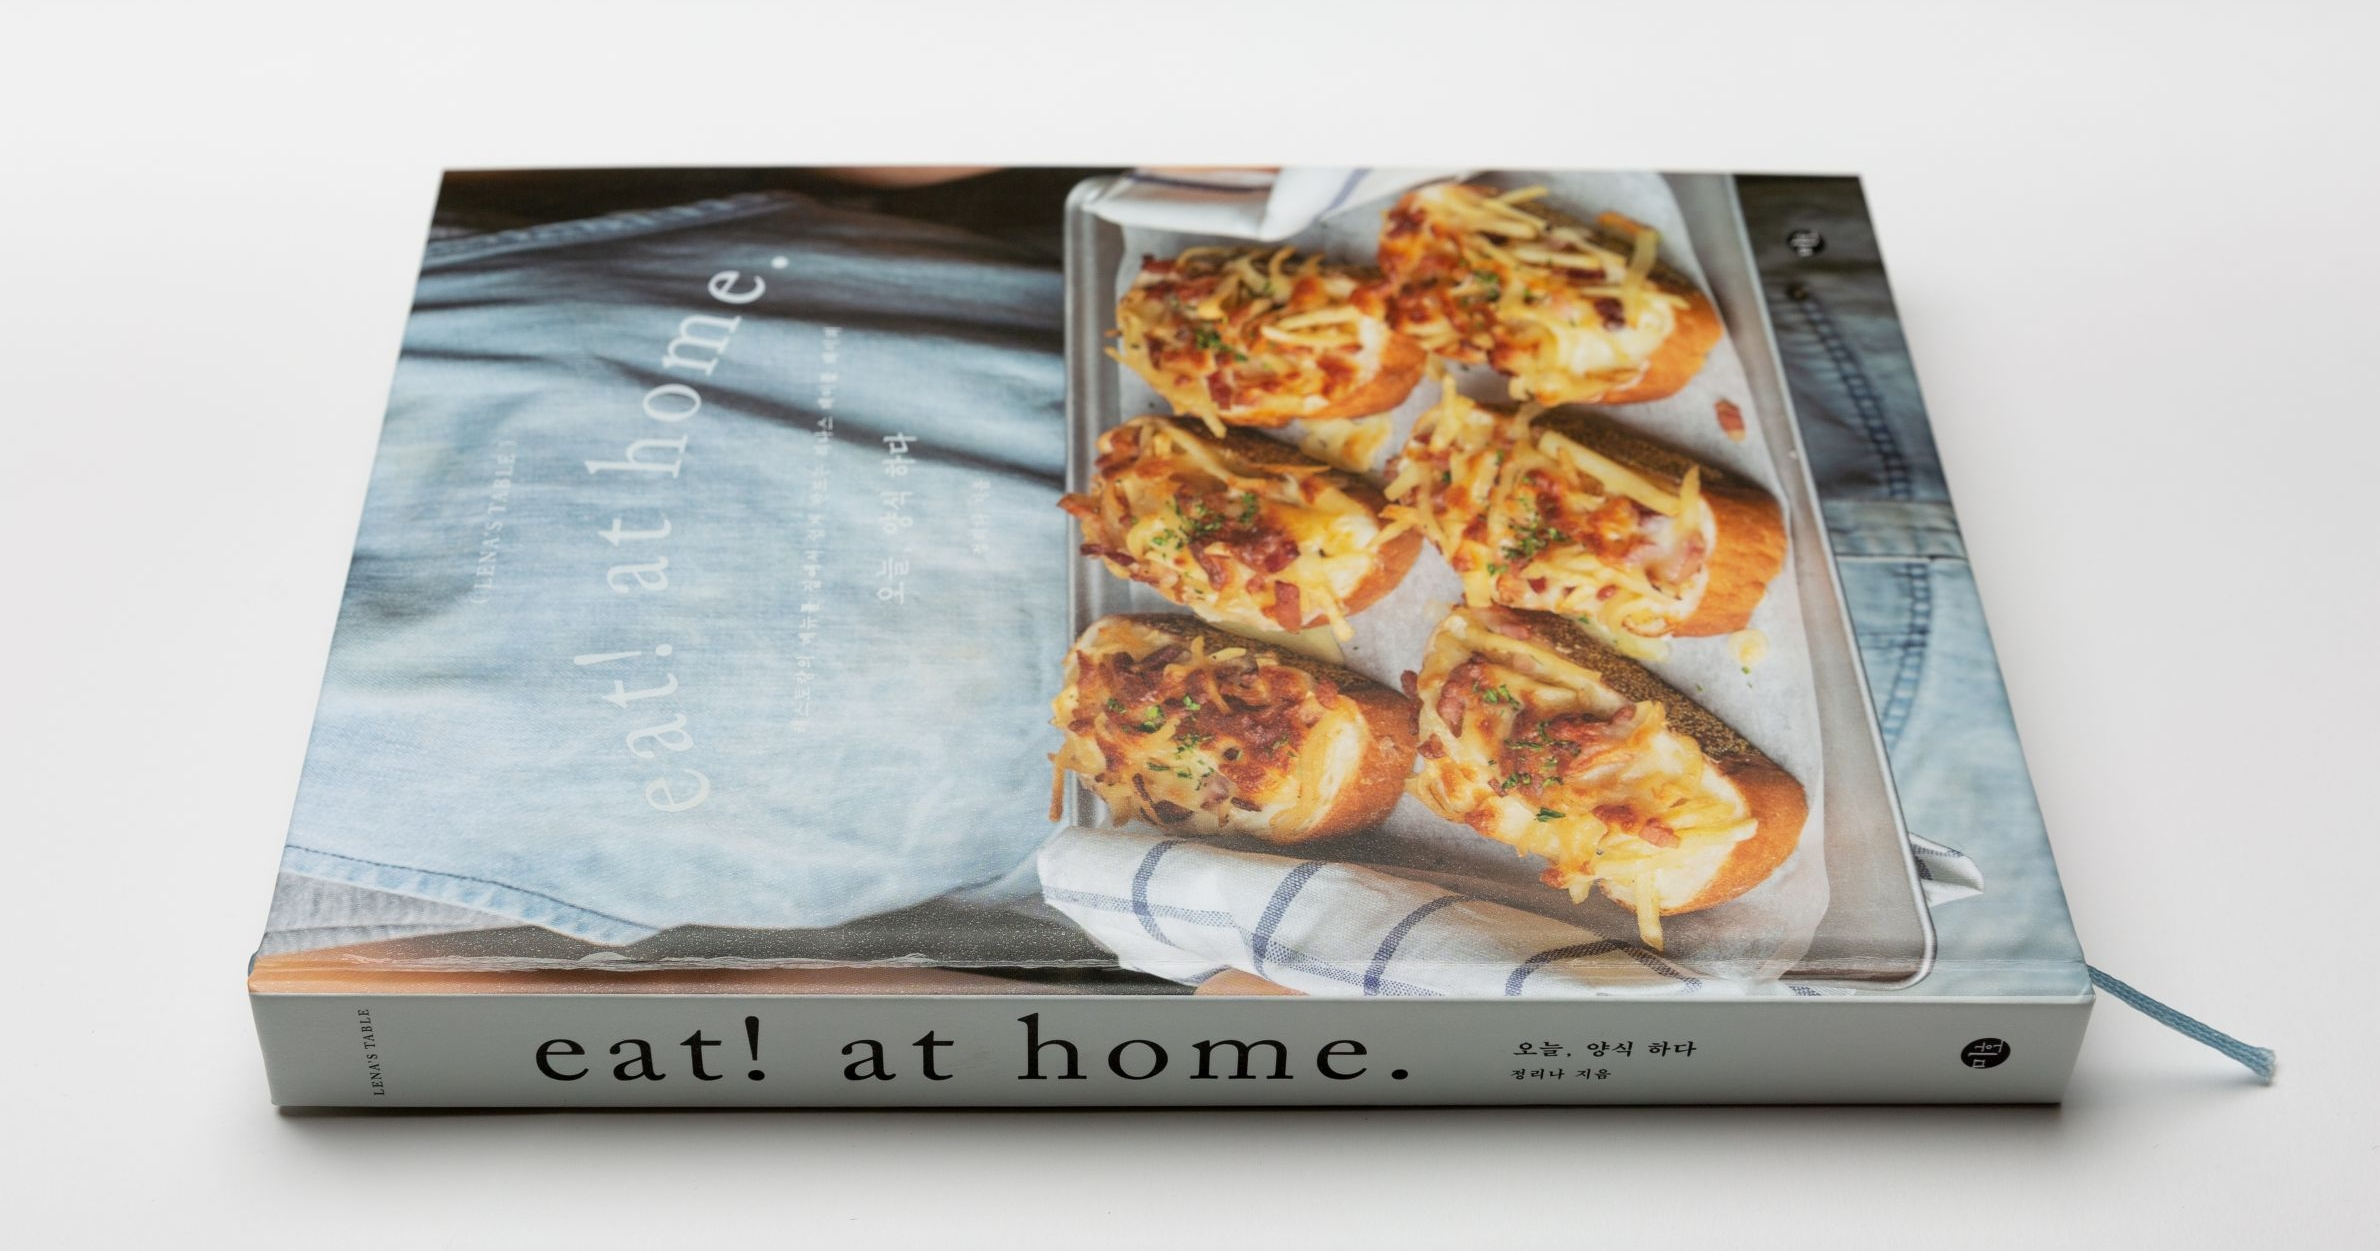 culinary inspiration - eat! at home - a new book from Lena's Table